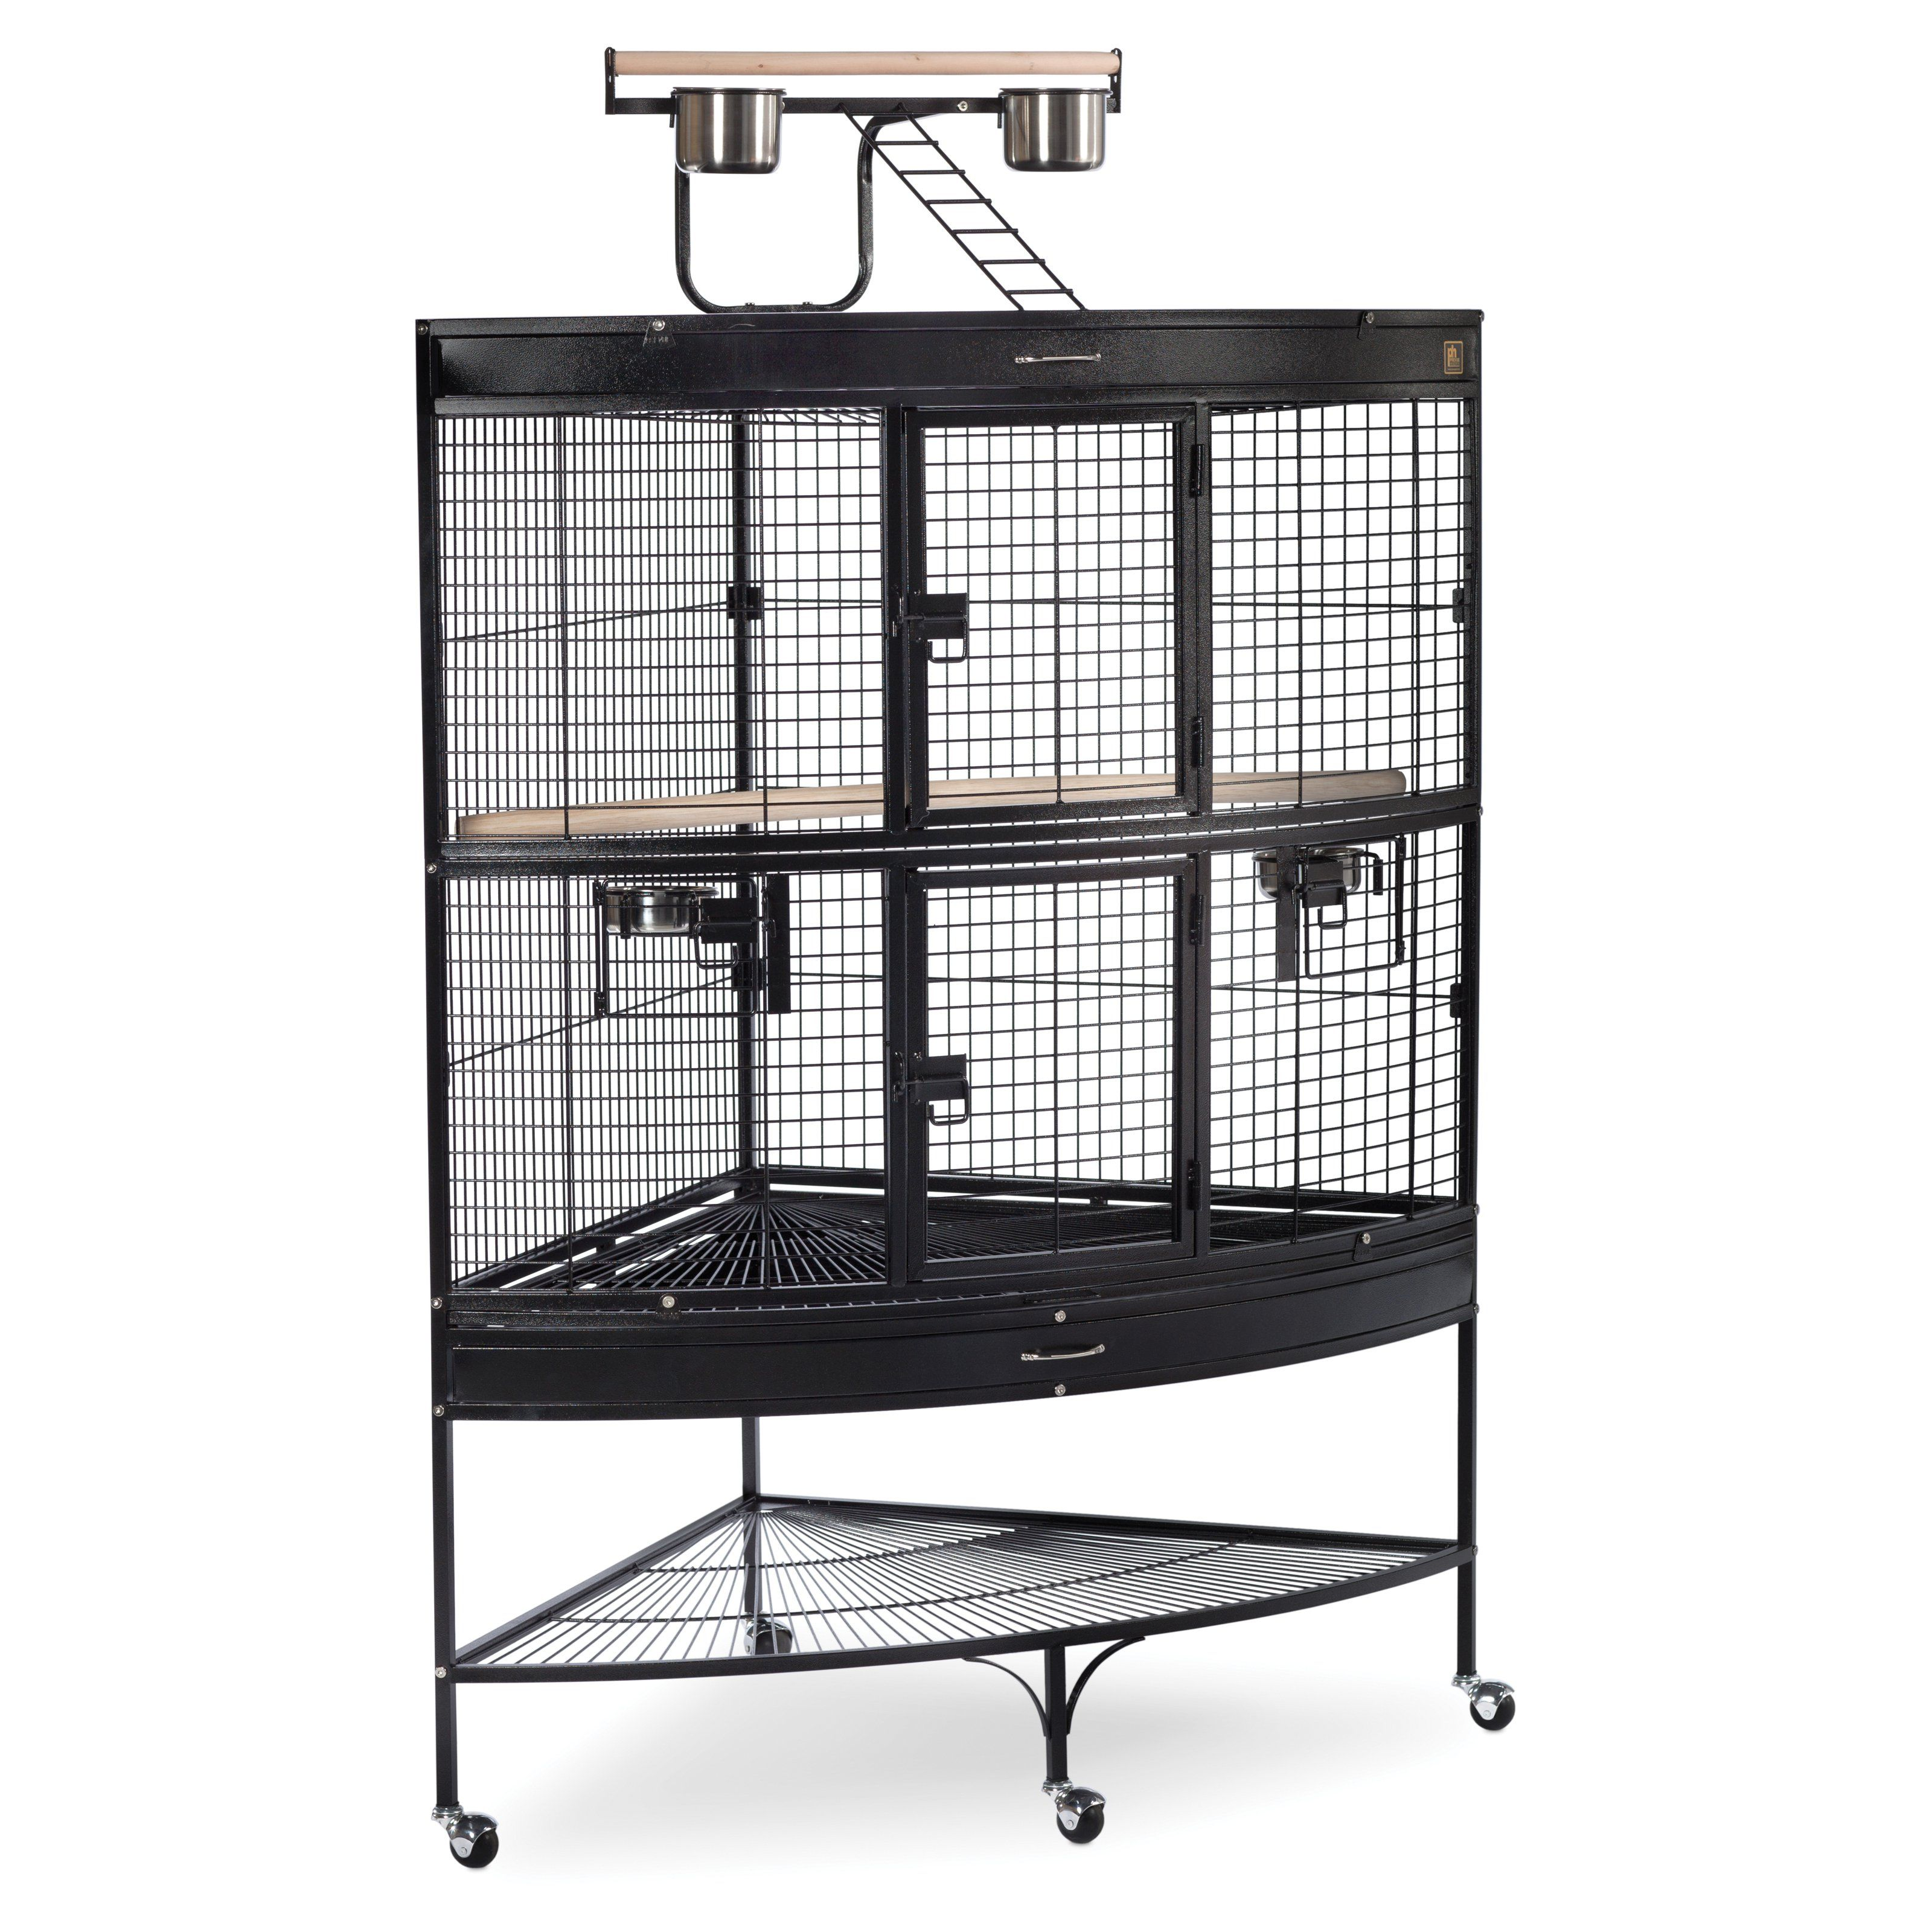 Prevue Pet Products Corner Parrot Cage-Black 3158BLK. I like the idea of a corner cage. This one also has a play stand on top, along with space for storage below. Use baskets/bins for hidden storage.